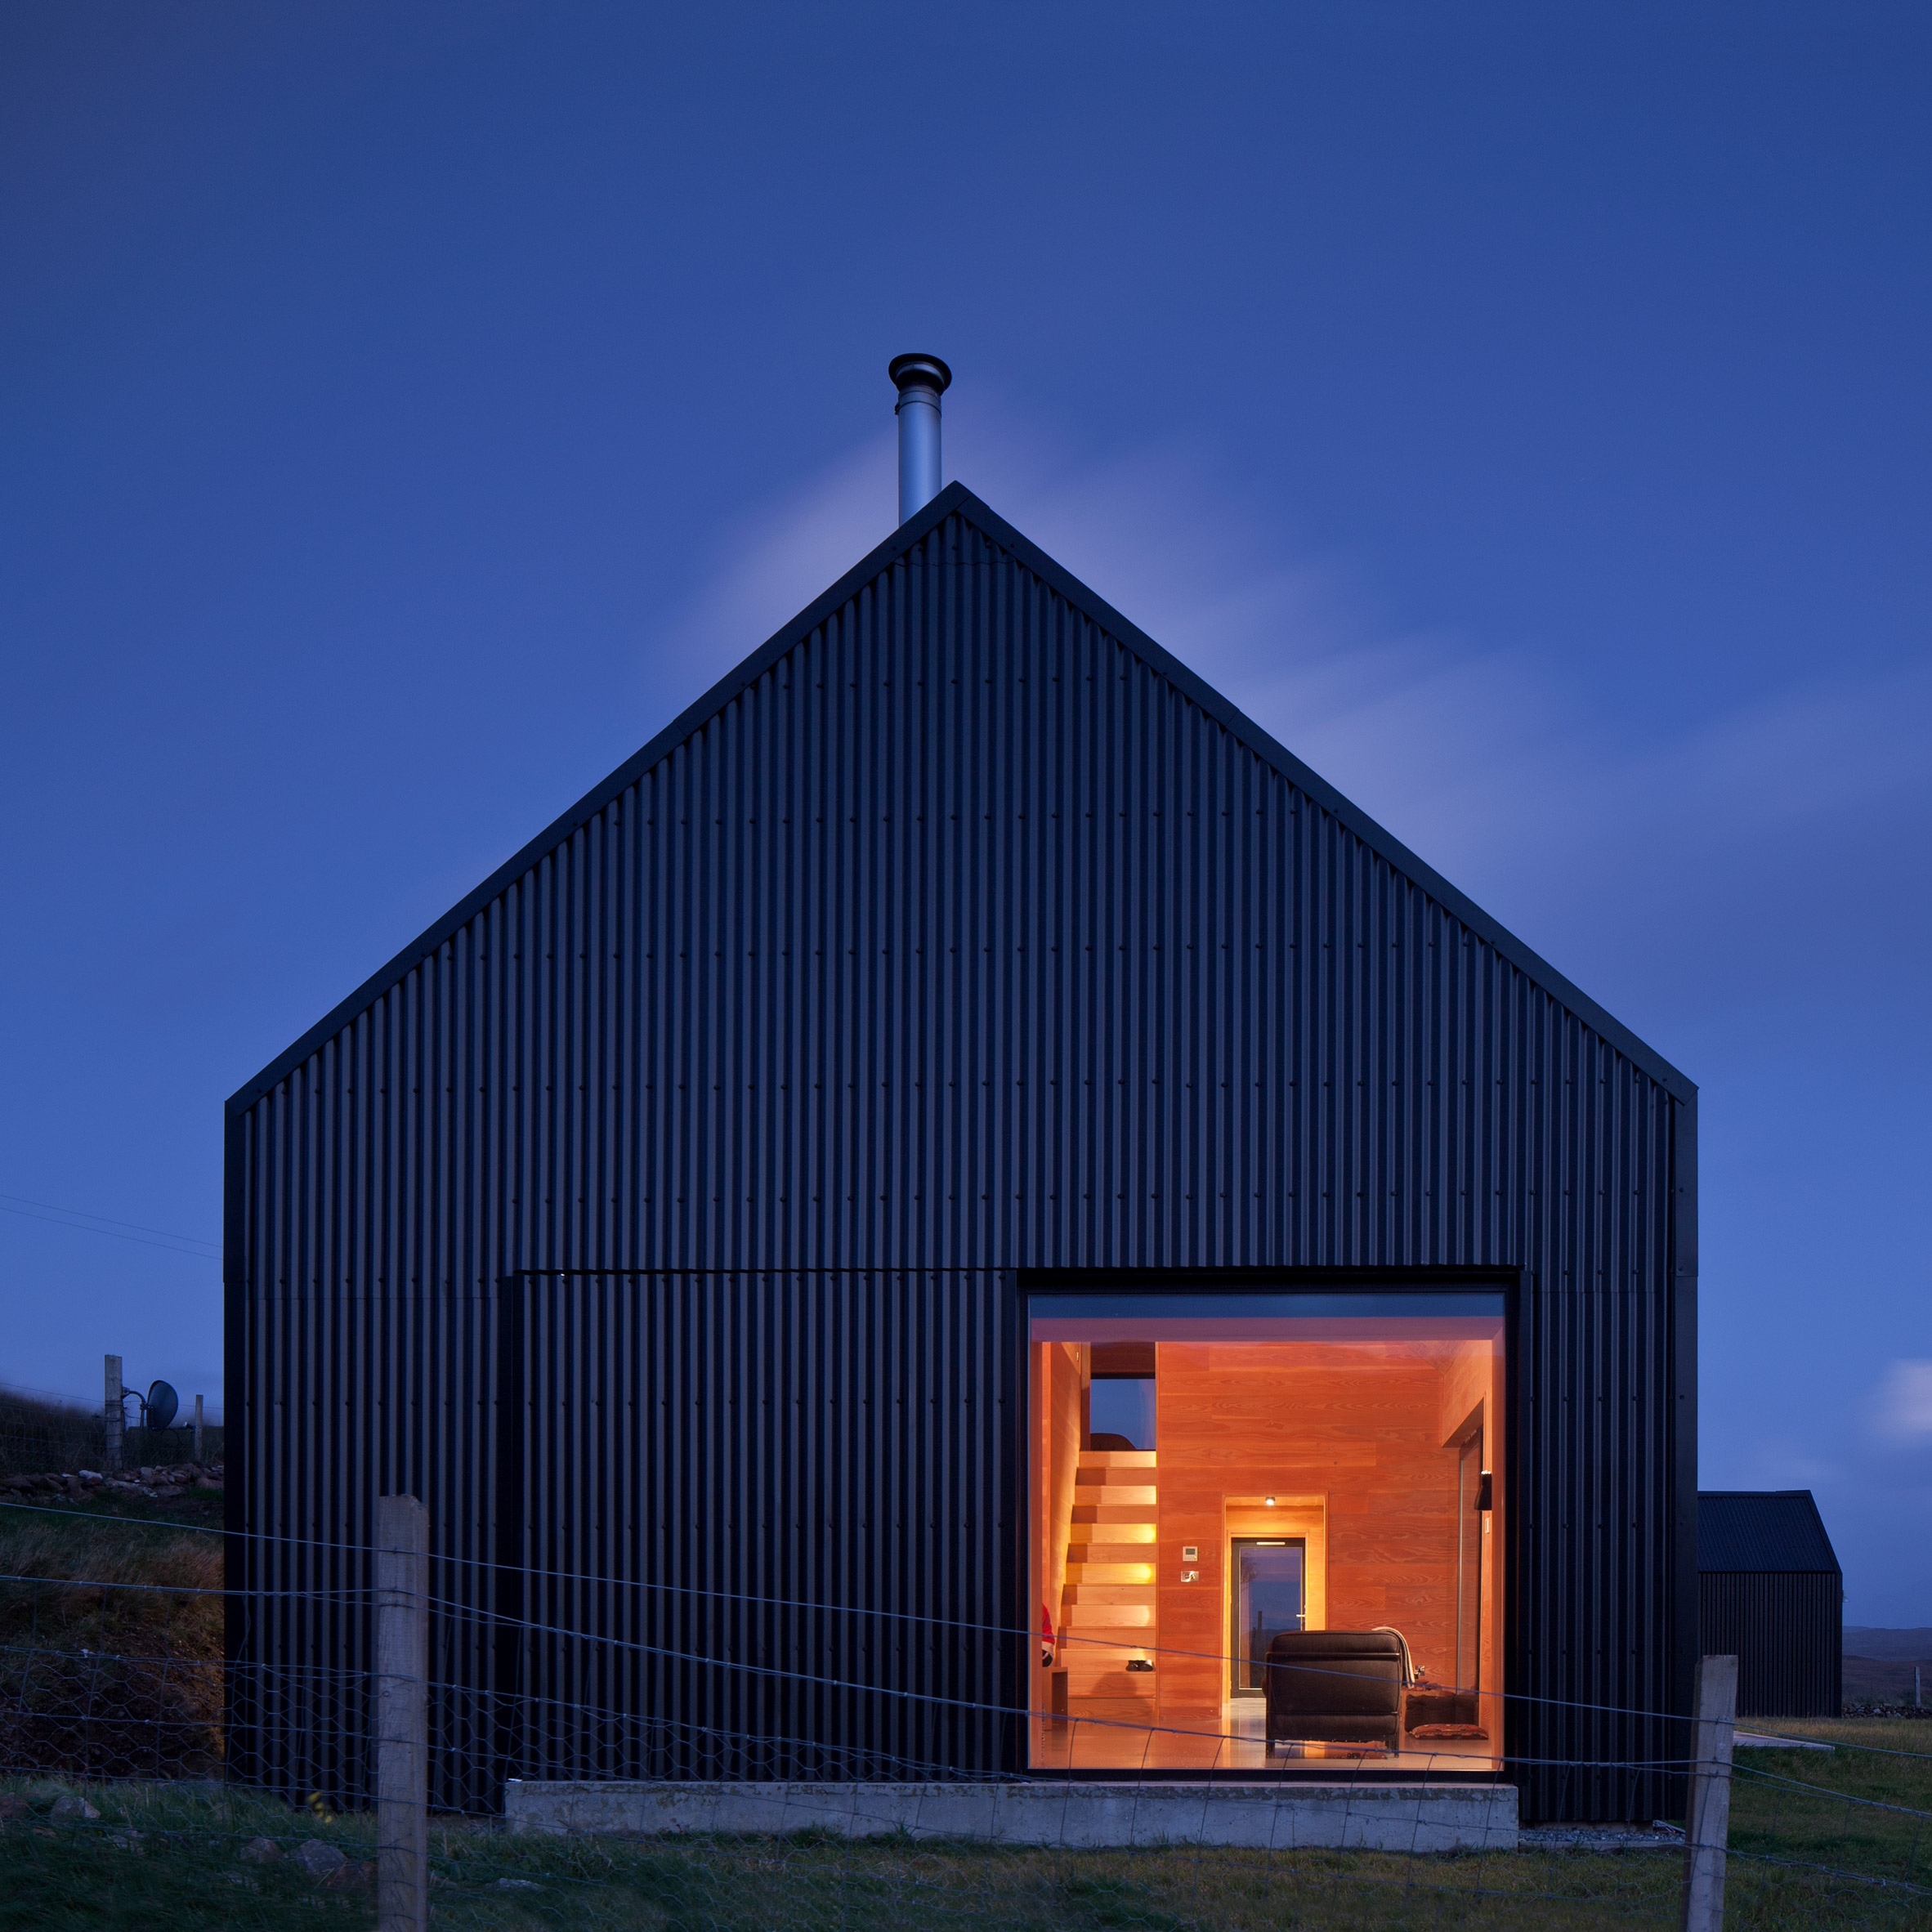 Dezeen's top 10 houses of 2019: Black Shed house on the Isle of Skye by Mary Arnold-Forster Architects